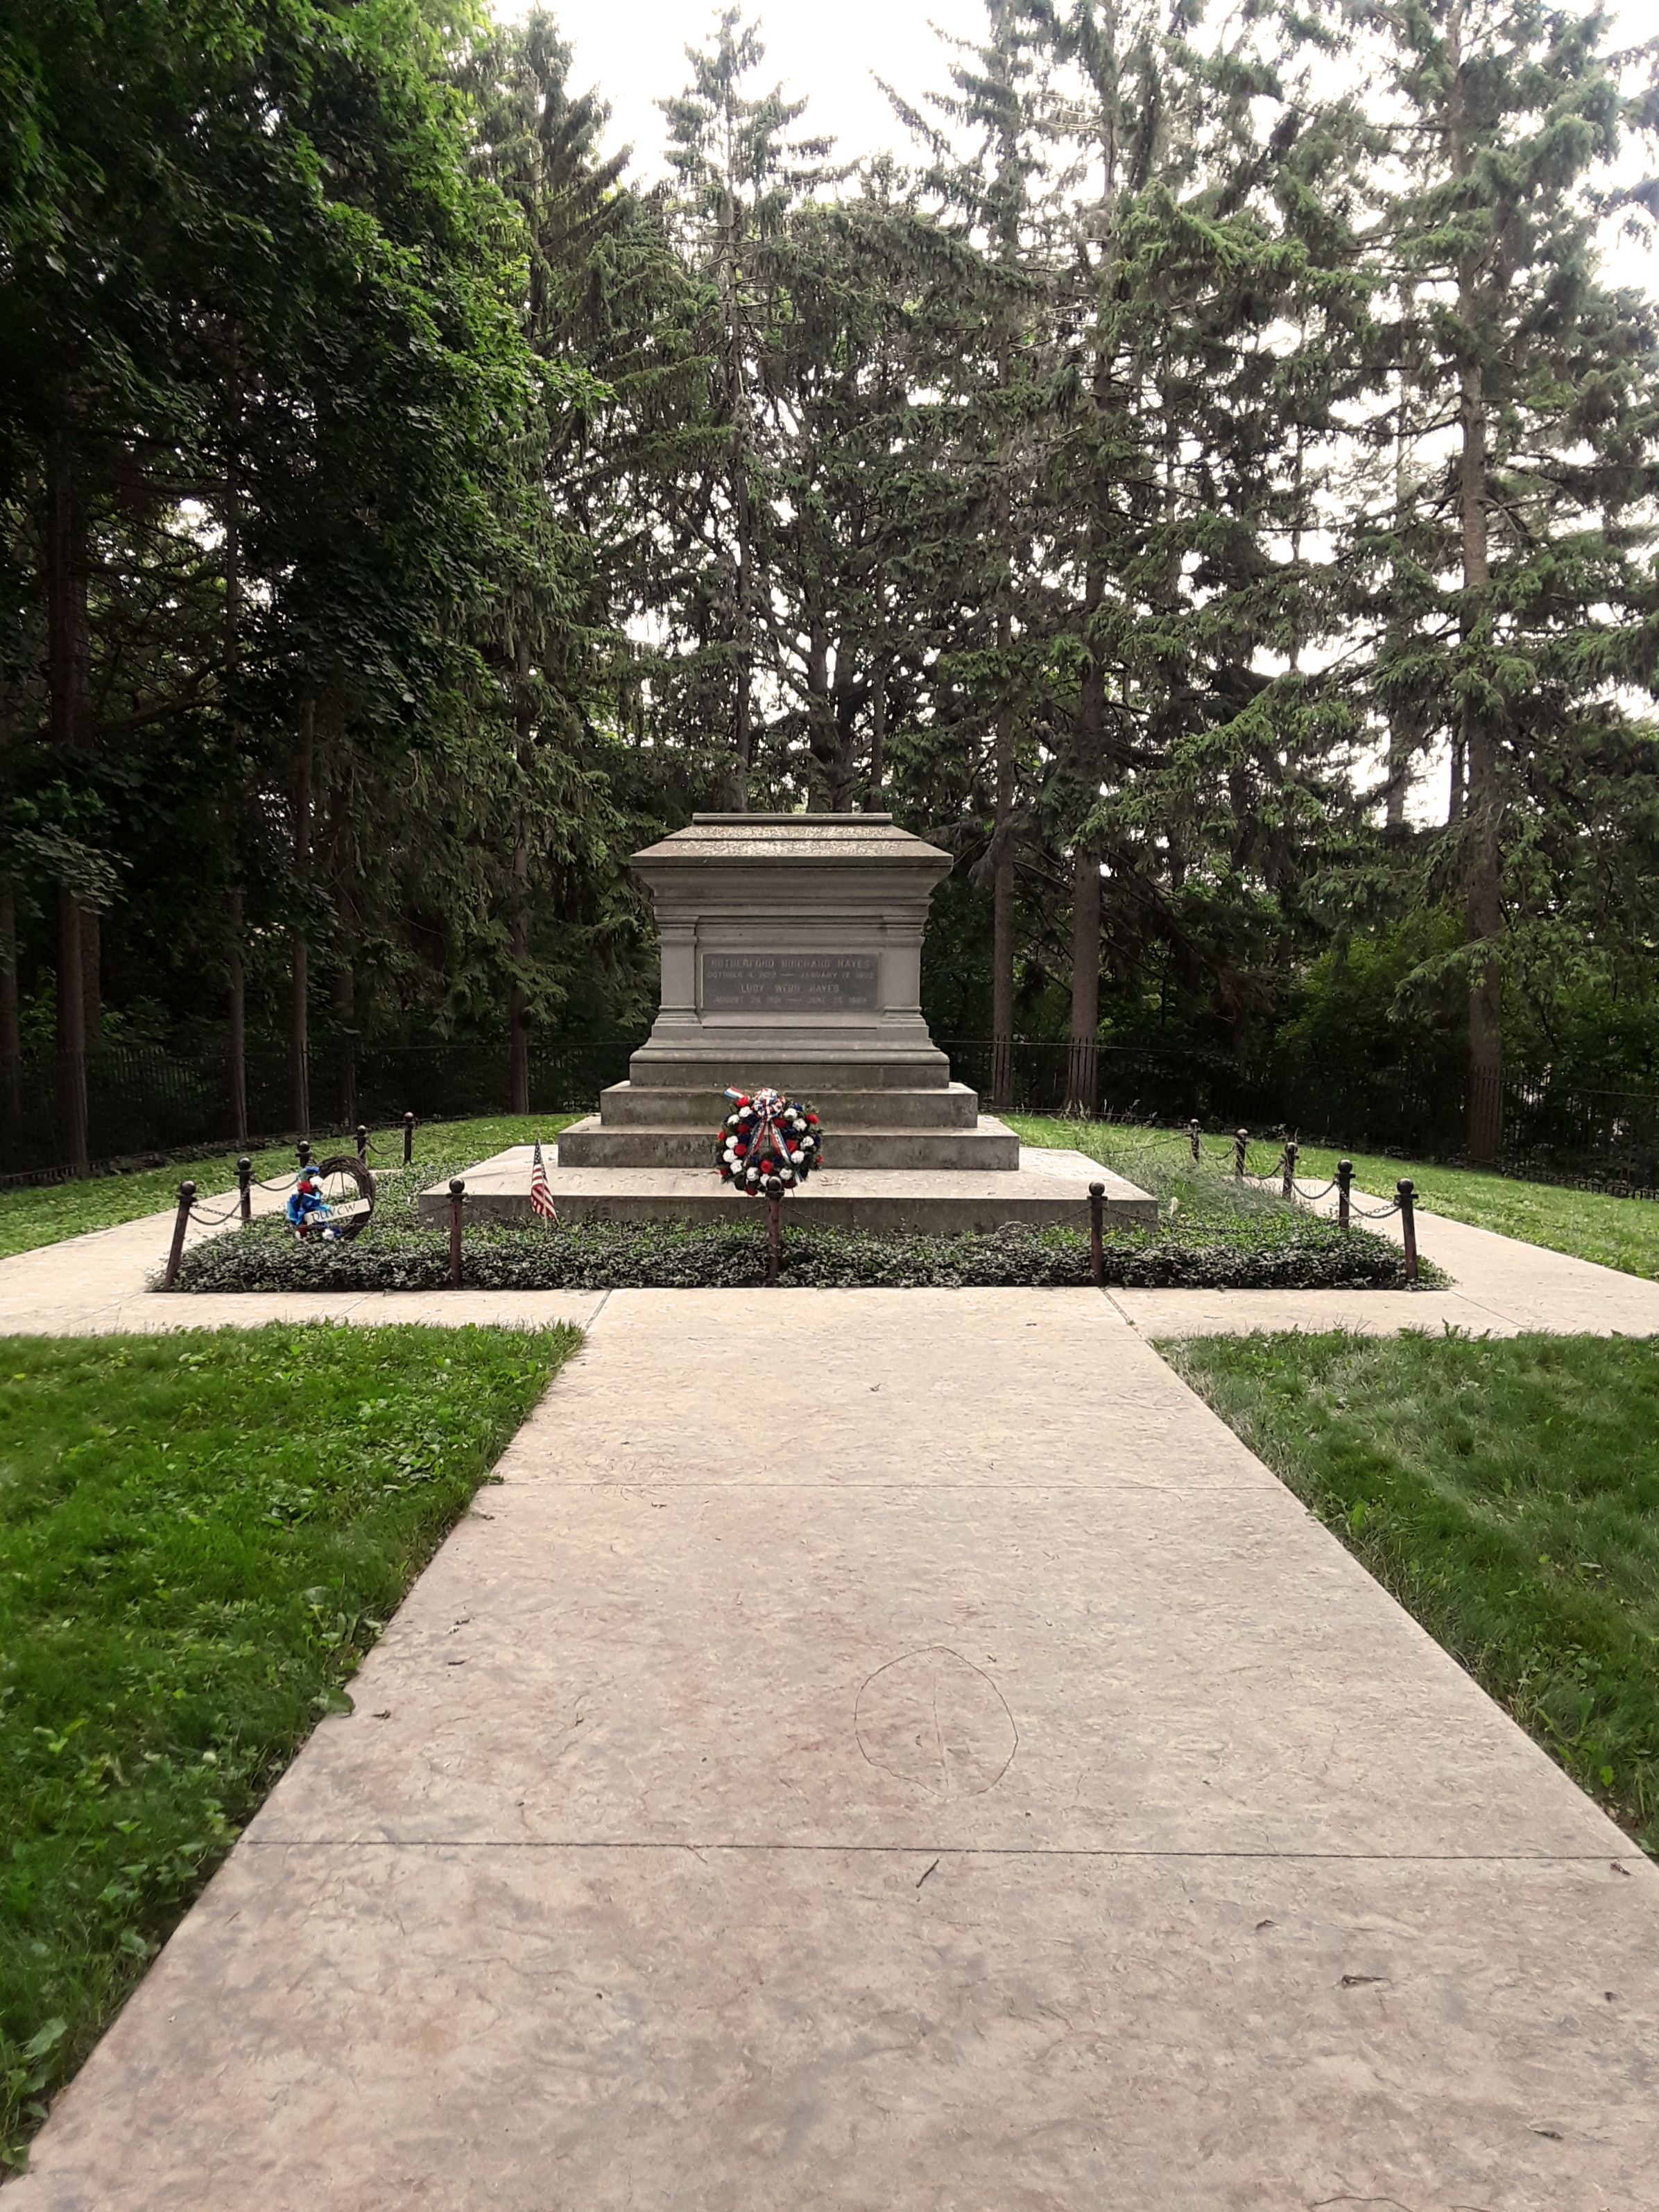 Spiegel Grove: The Rutherford B. Hayes Presidential Library and Museums